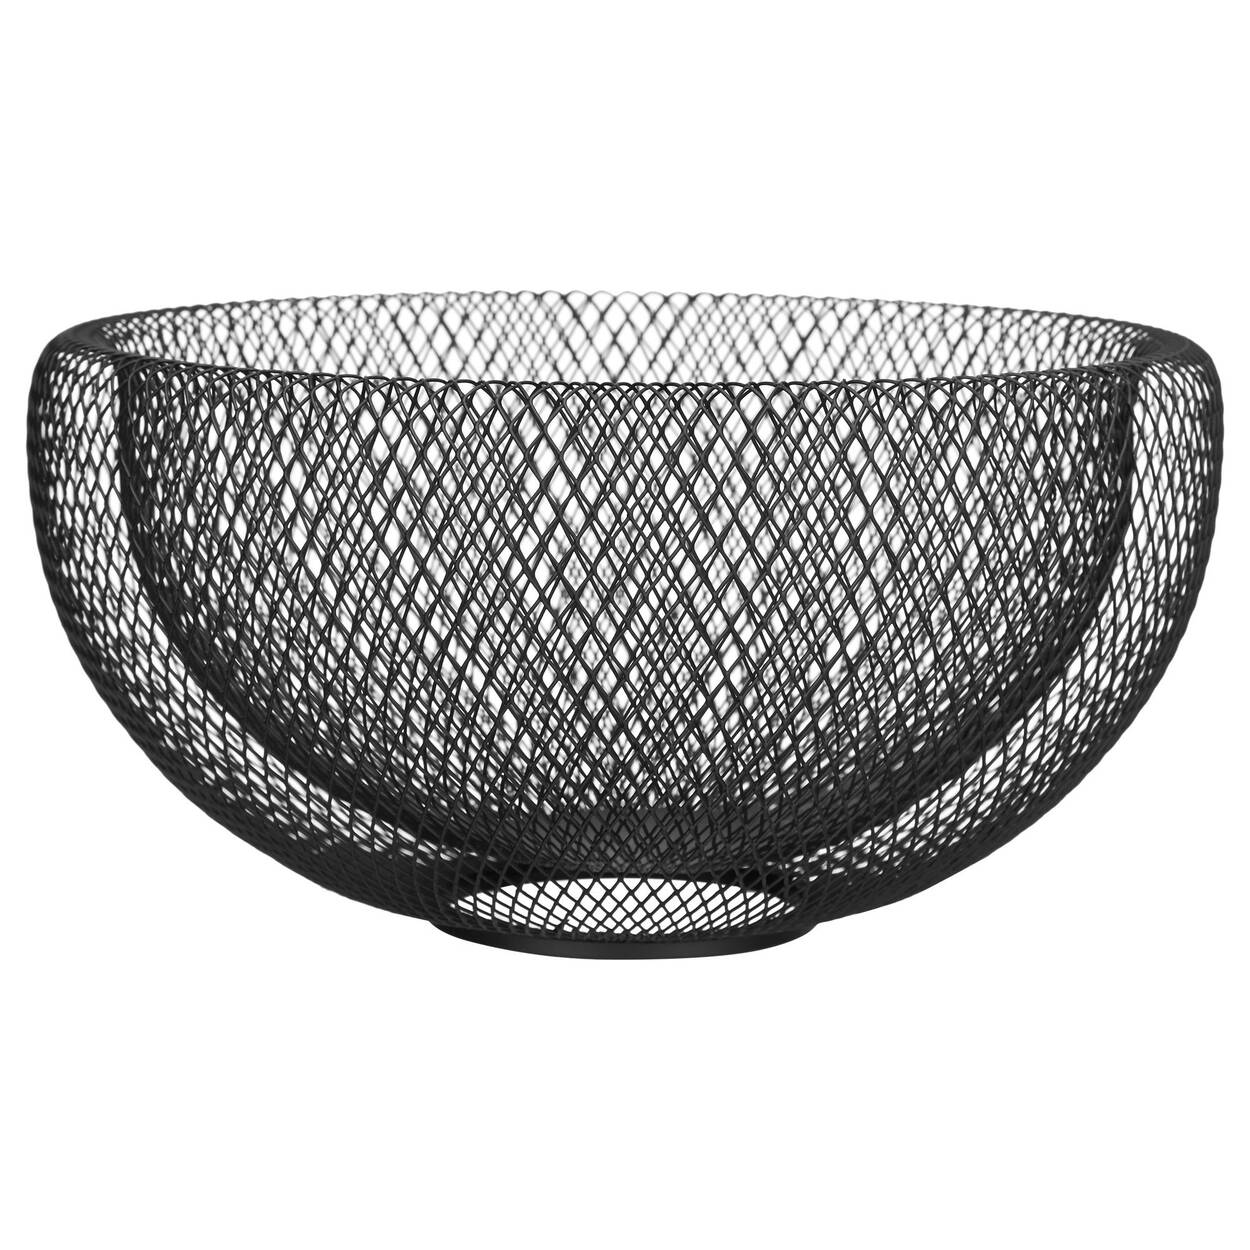 Decorative Metal Mesh Bowl